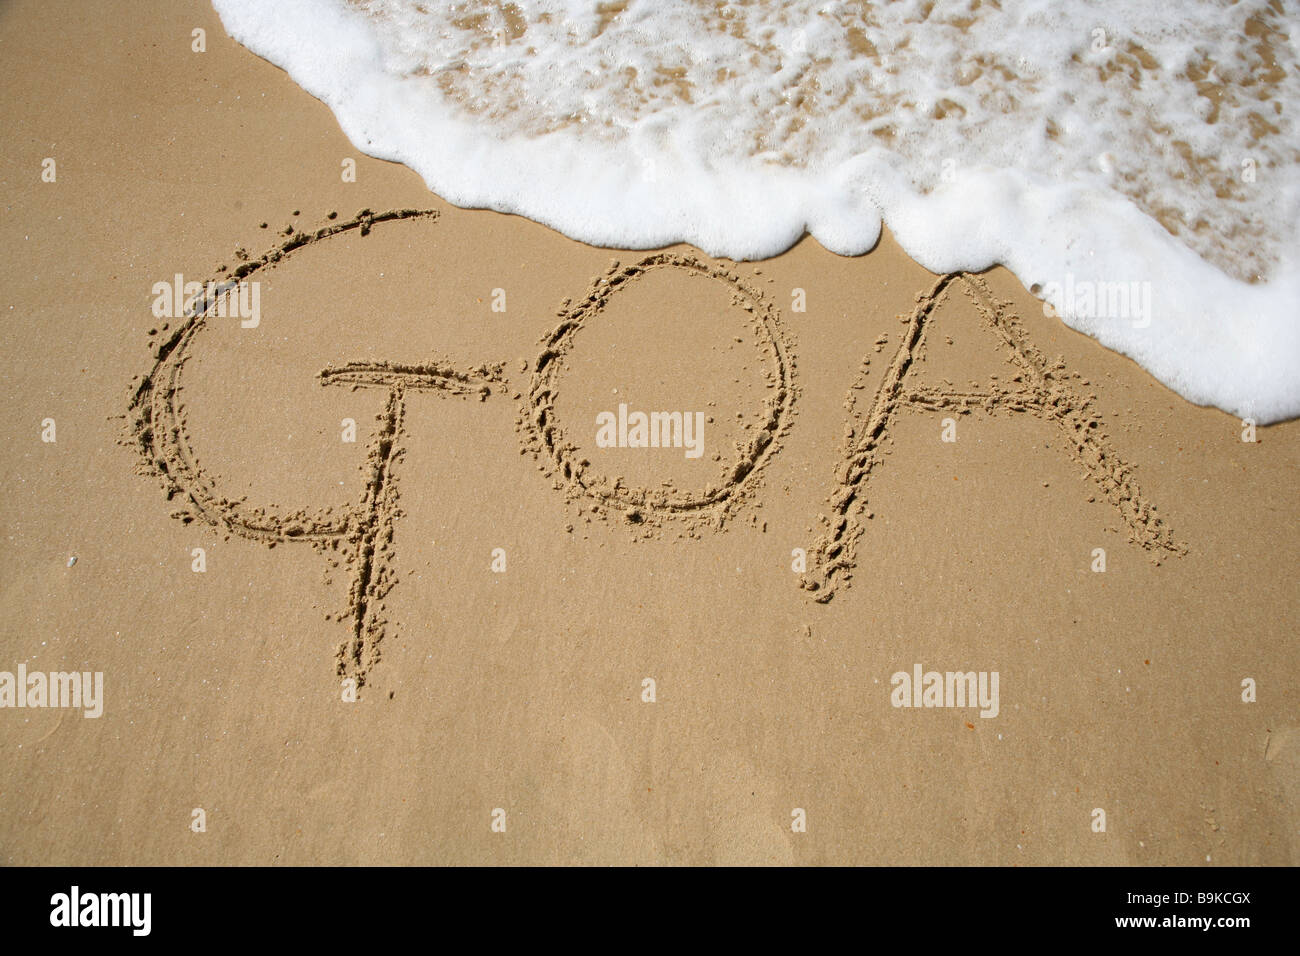 Goa written in the sand at Mobor Beach in Goa, India. - Stock Image